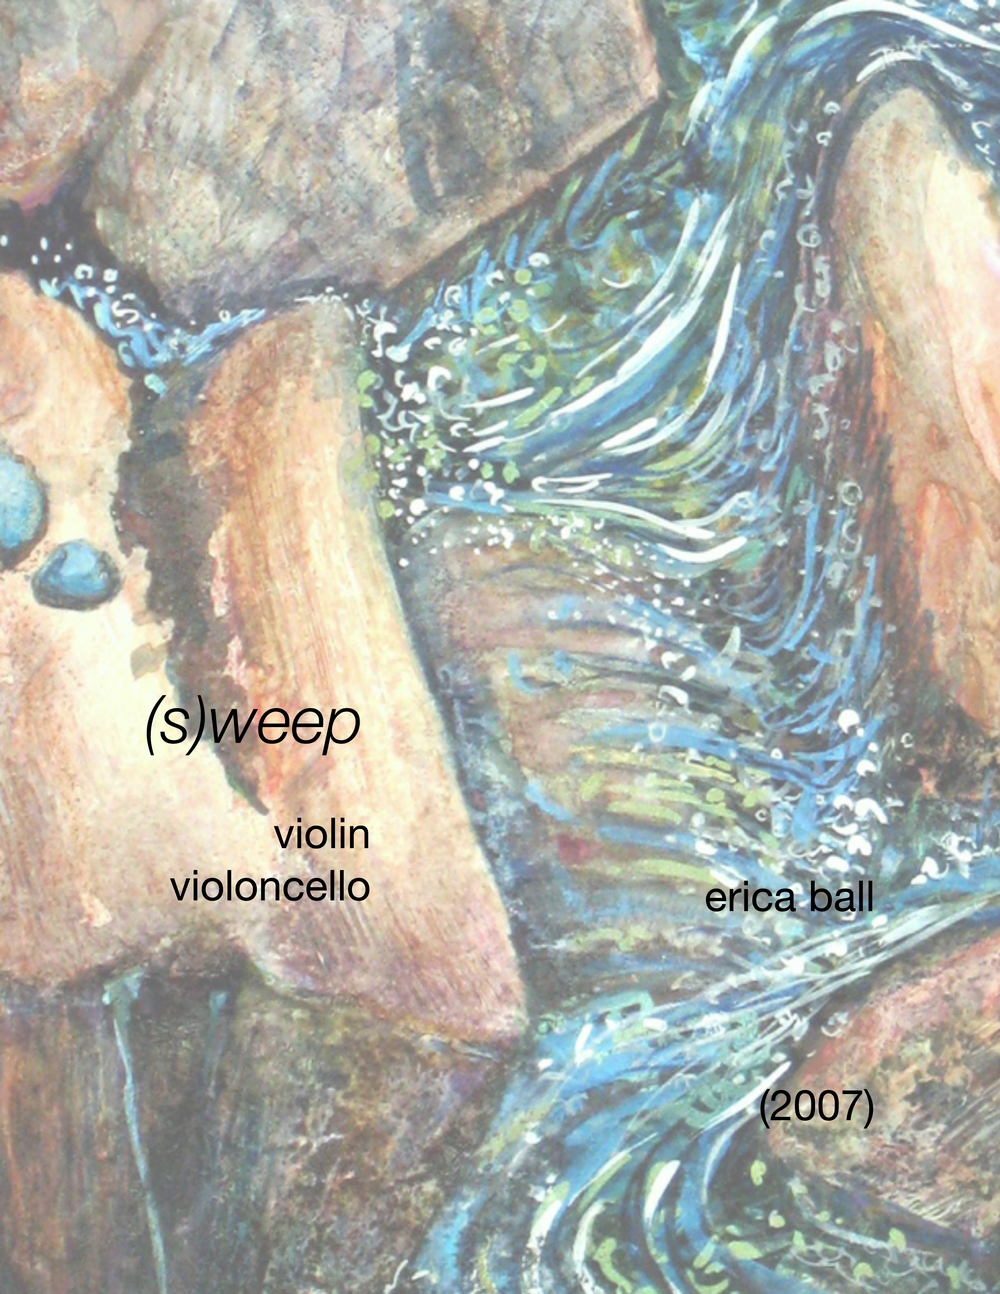 (s)weep  - for two violins or violin and violoncello